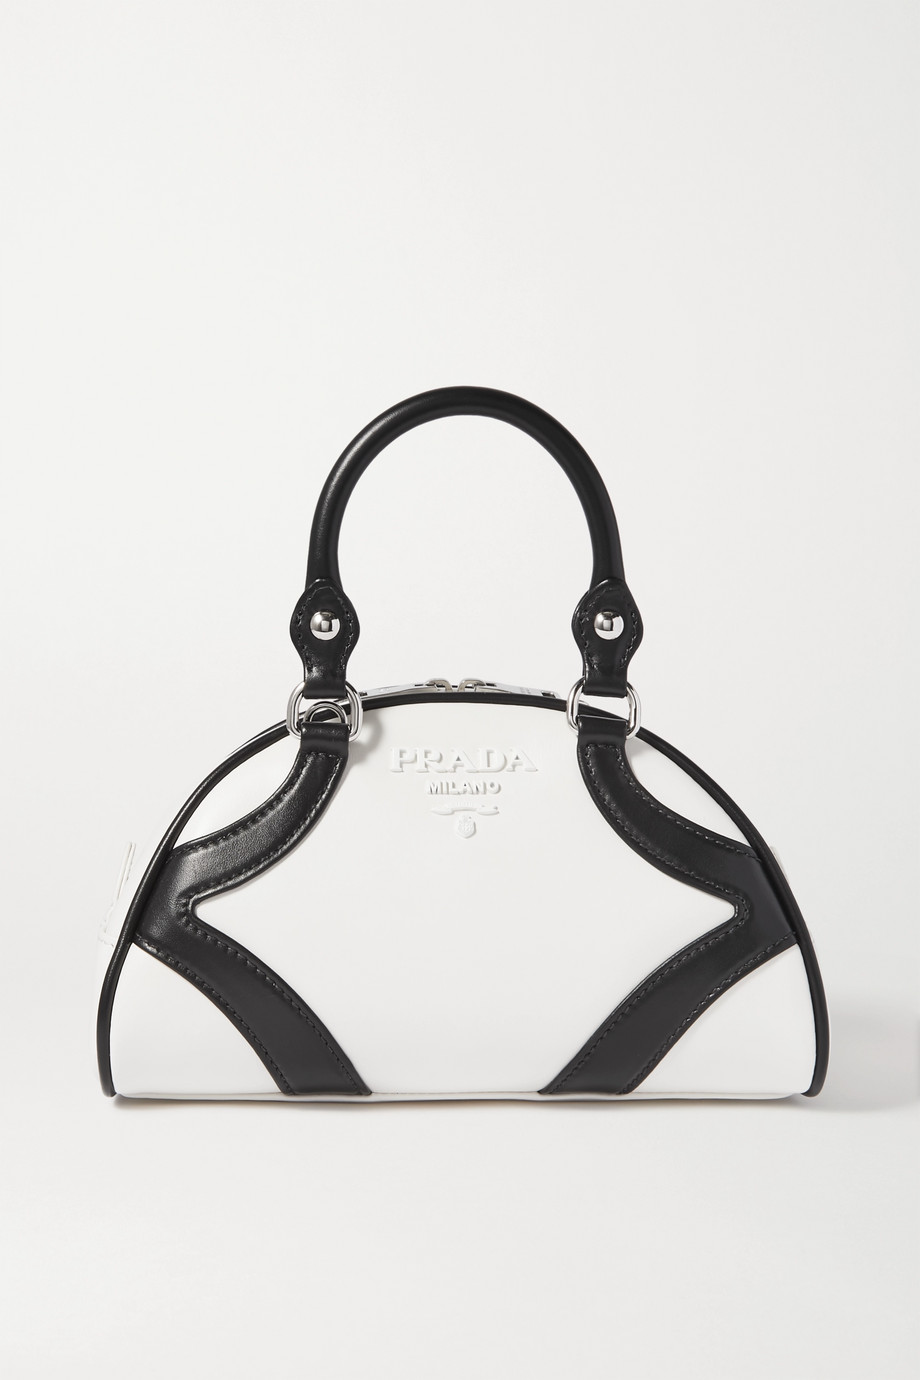 Prada Bowling two-tone leather tote